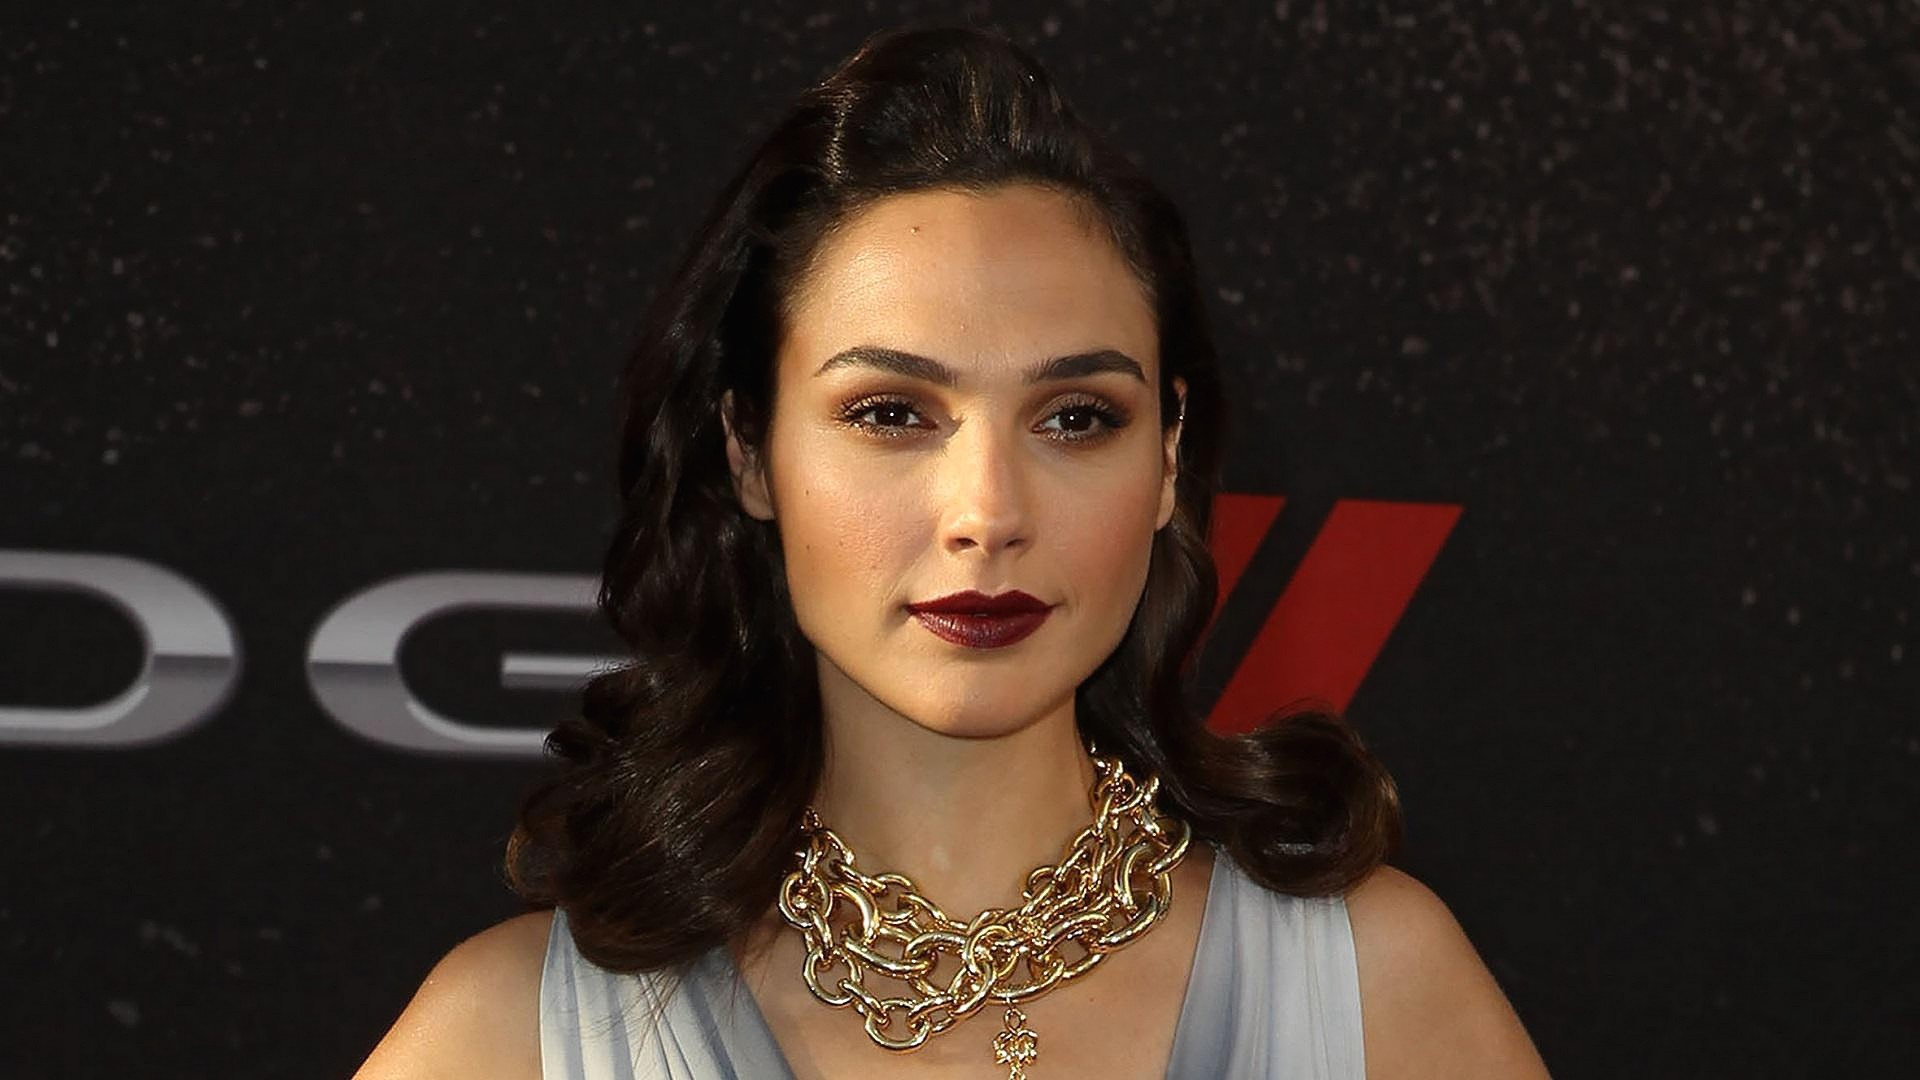 Hd Gal Gadot Cute Smile Face Look In Function Background Mobile Desktop Free Images